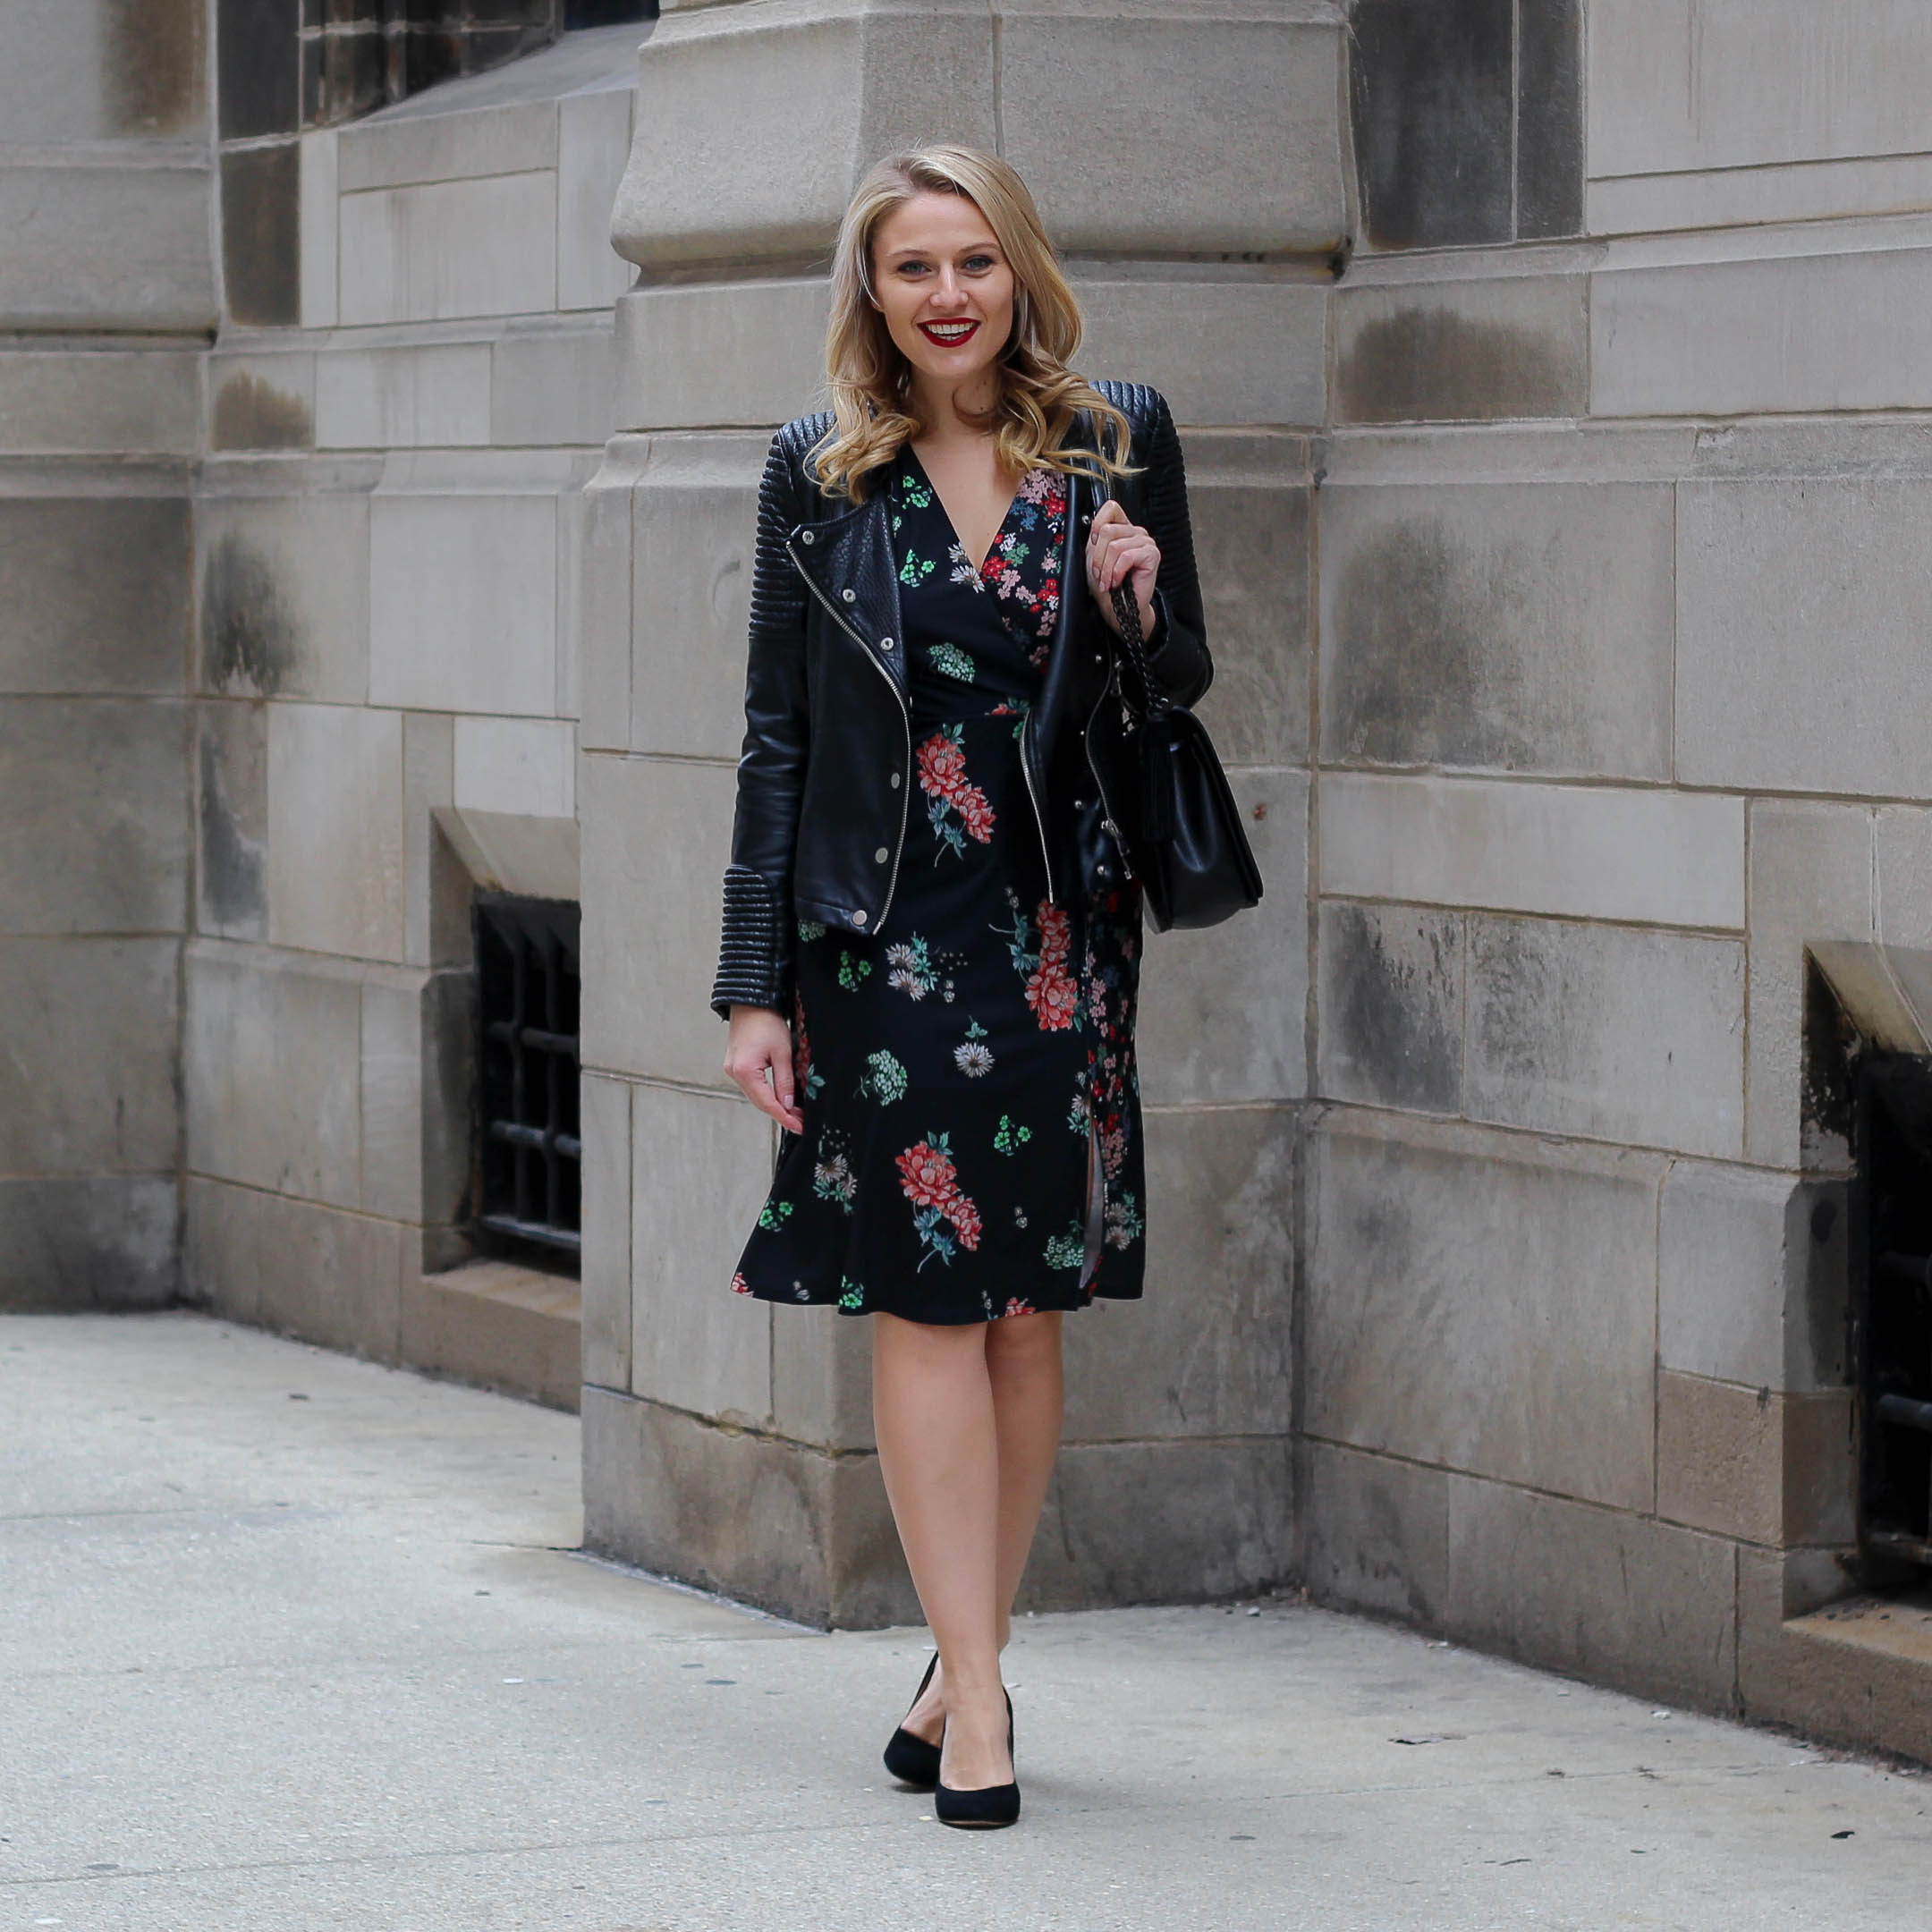 A night out on the town outfit featuring a midi floral dress with a faux leather biker jacket